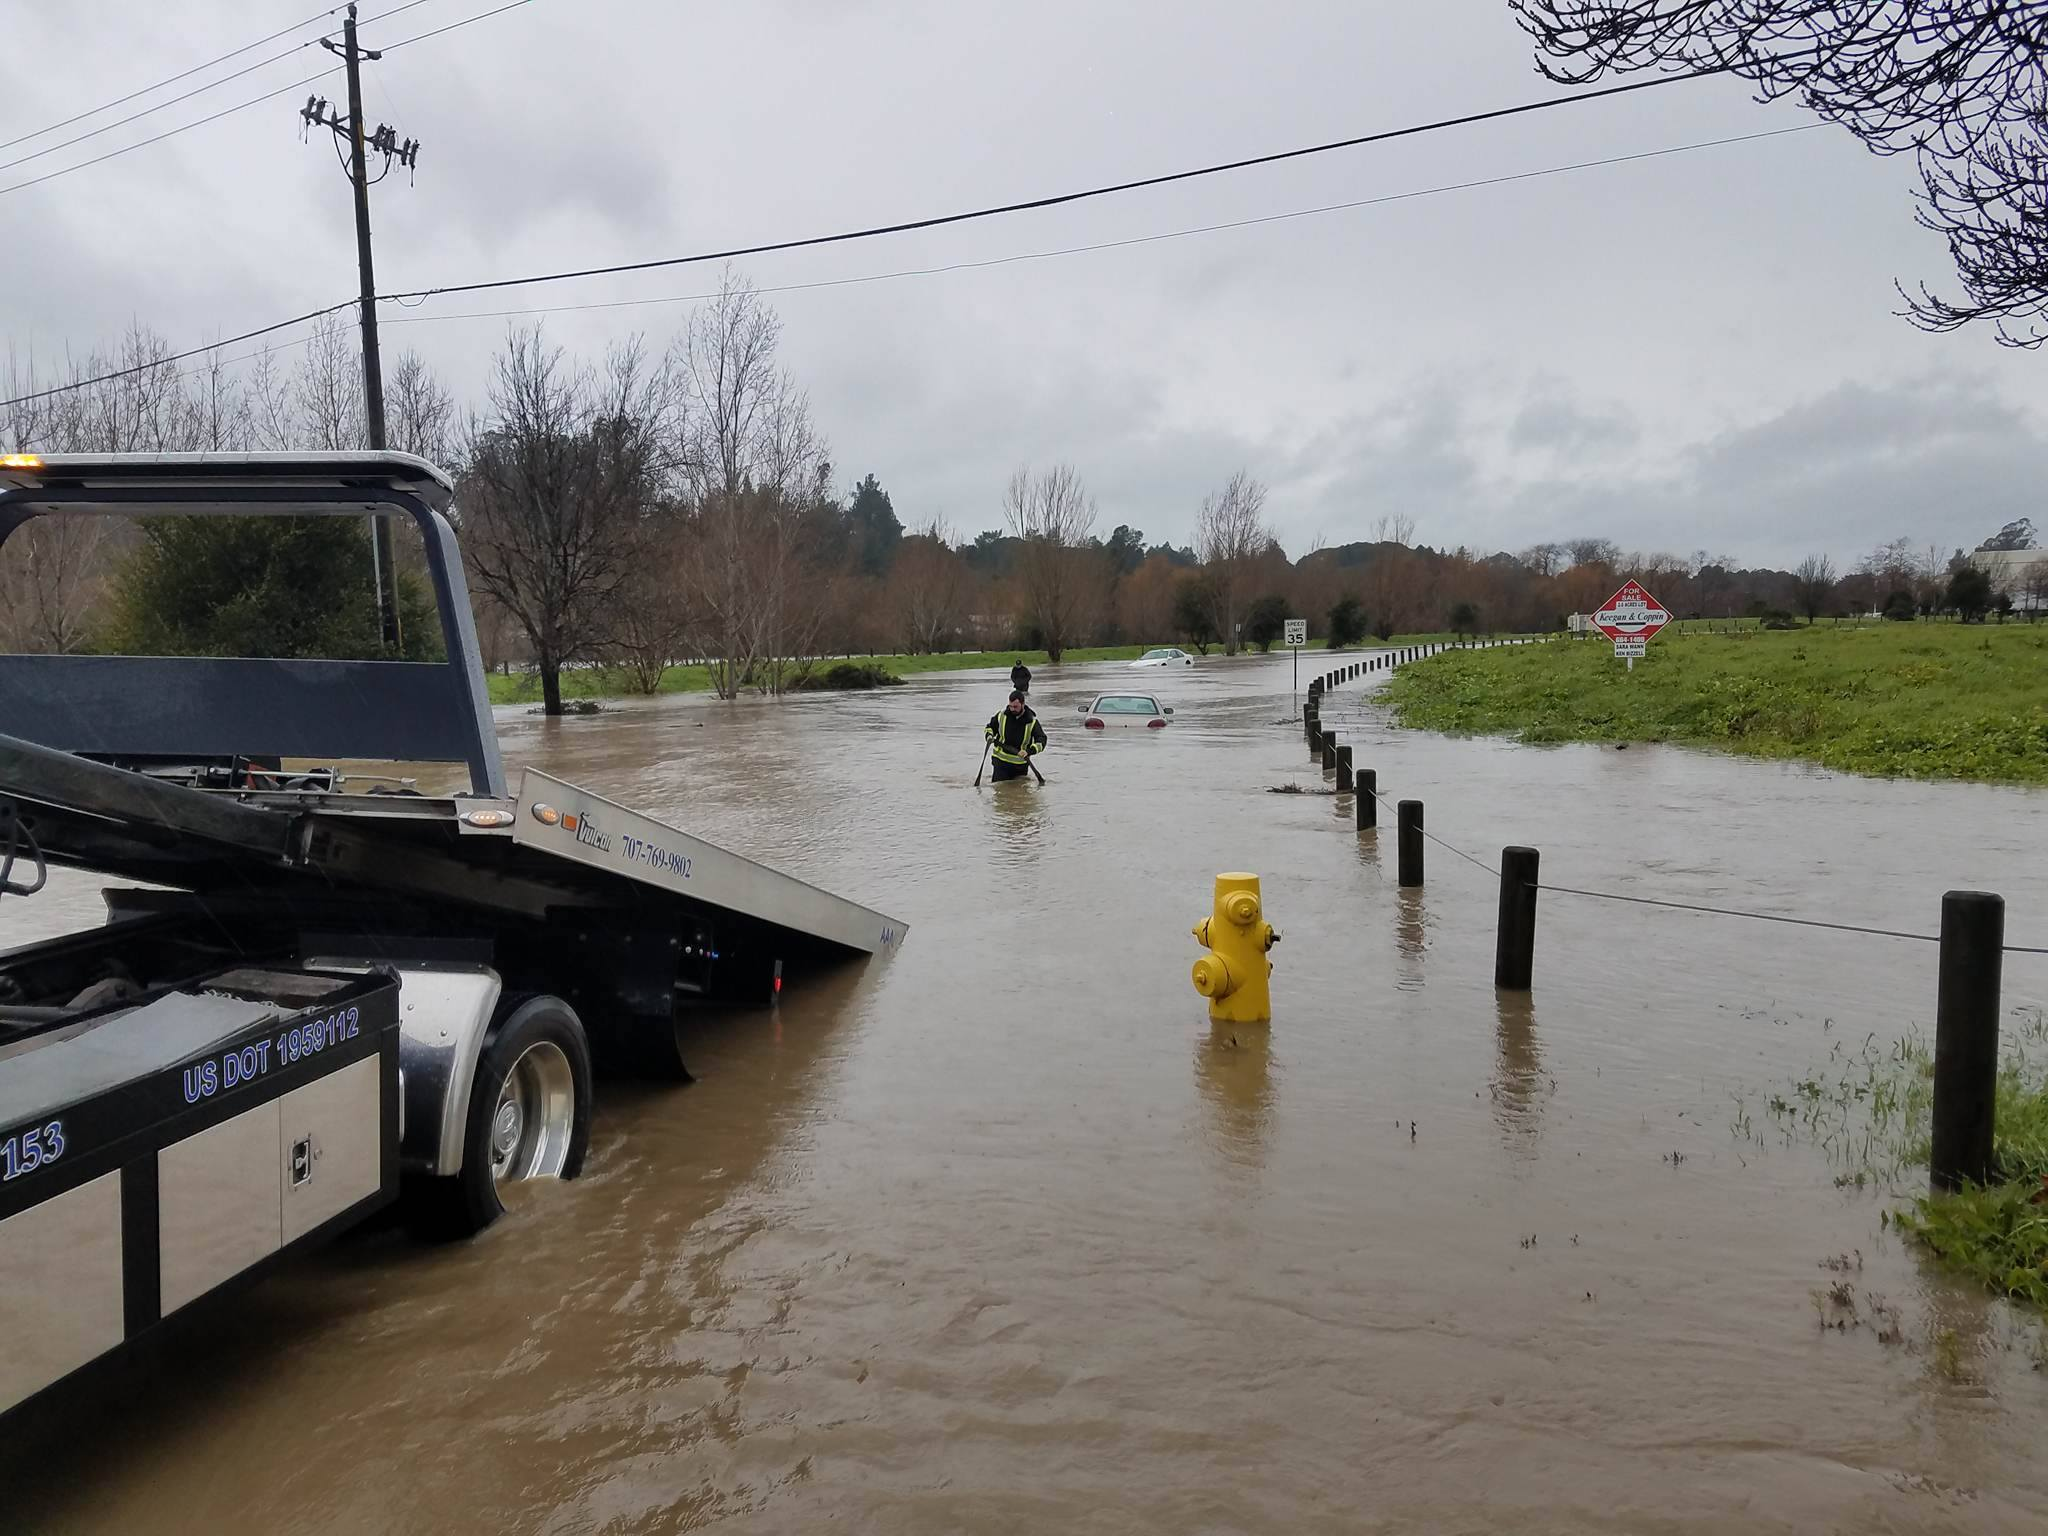 <div class='meta'><div class='origin-logo' data-origin='none'></div><span class='caption-text' data-credit='Cameron Reeder/Facebook'>A car was towed away from flood waters in Petaluma on Jan. 8, 2017.</span></div>